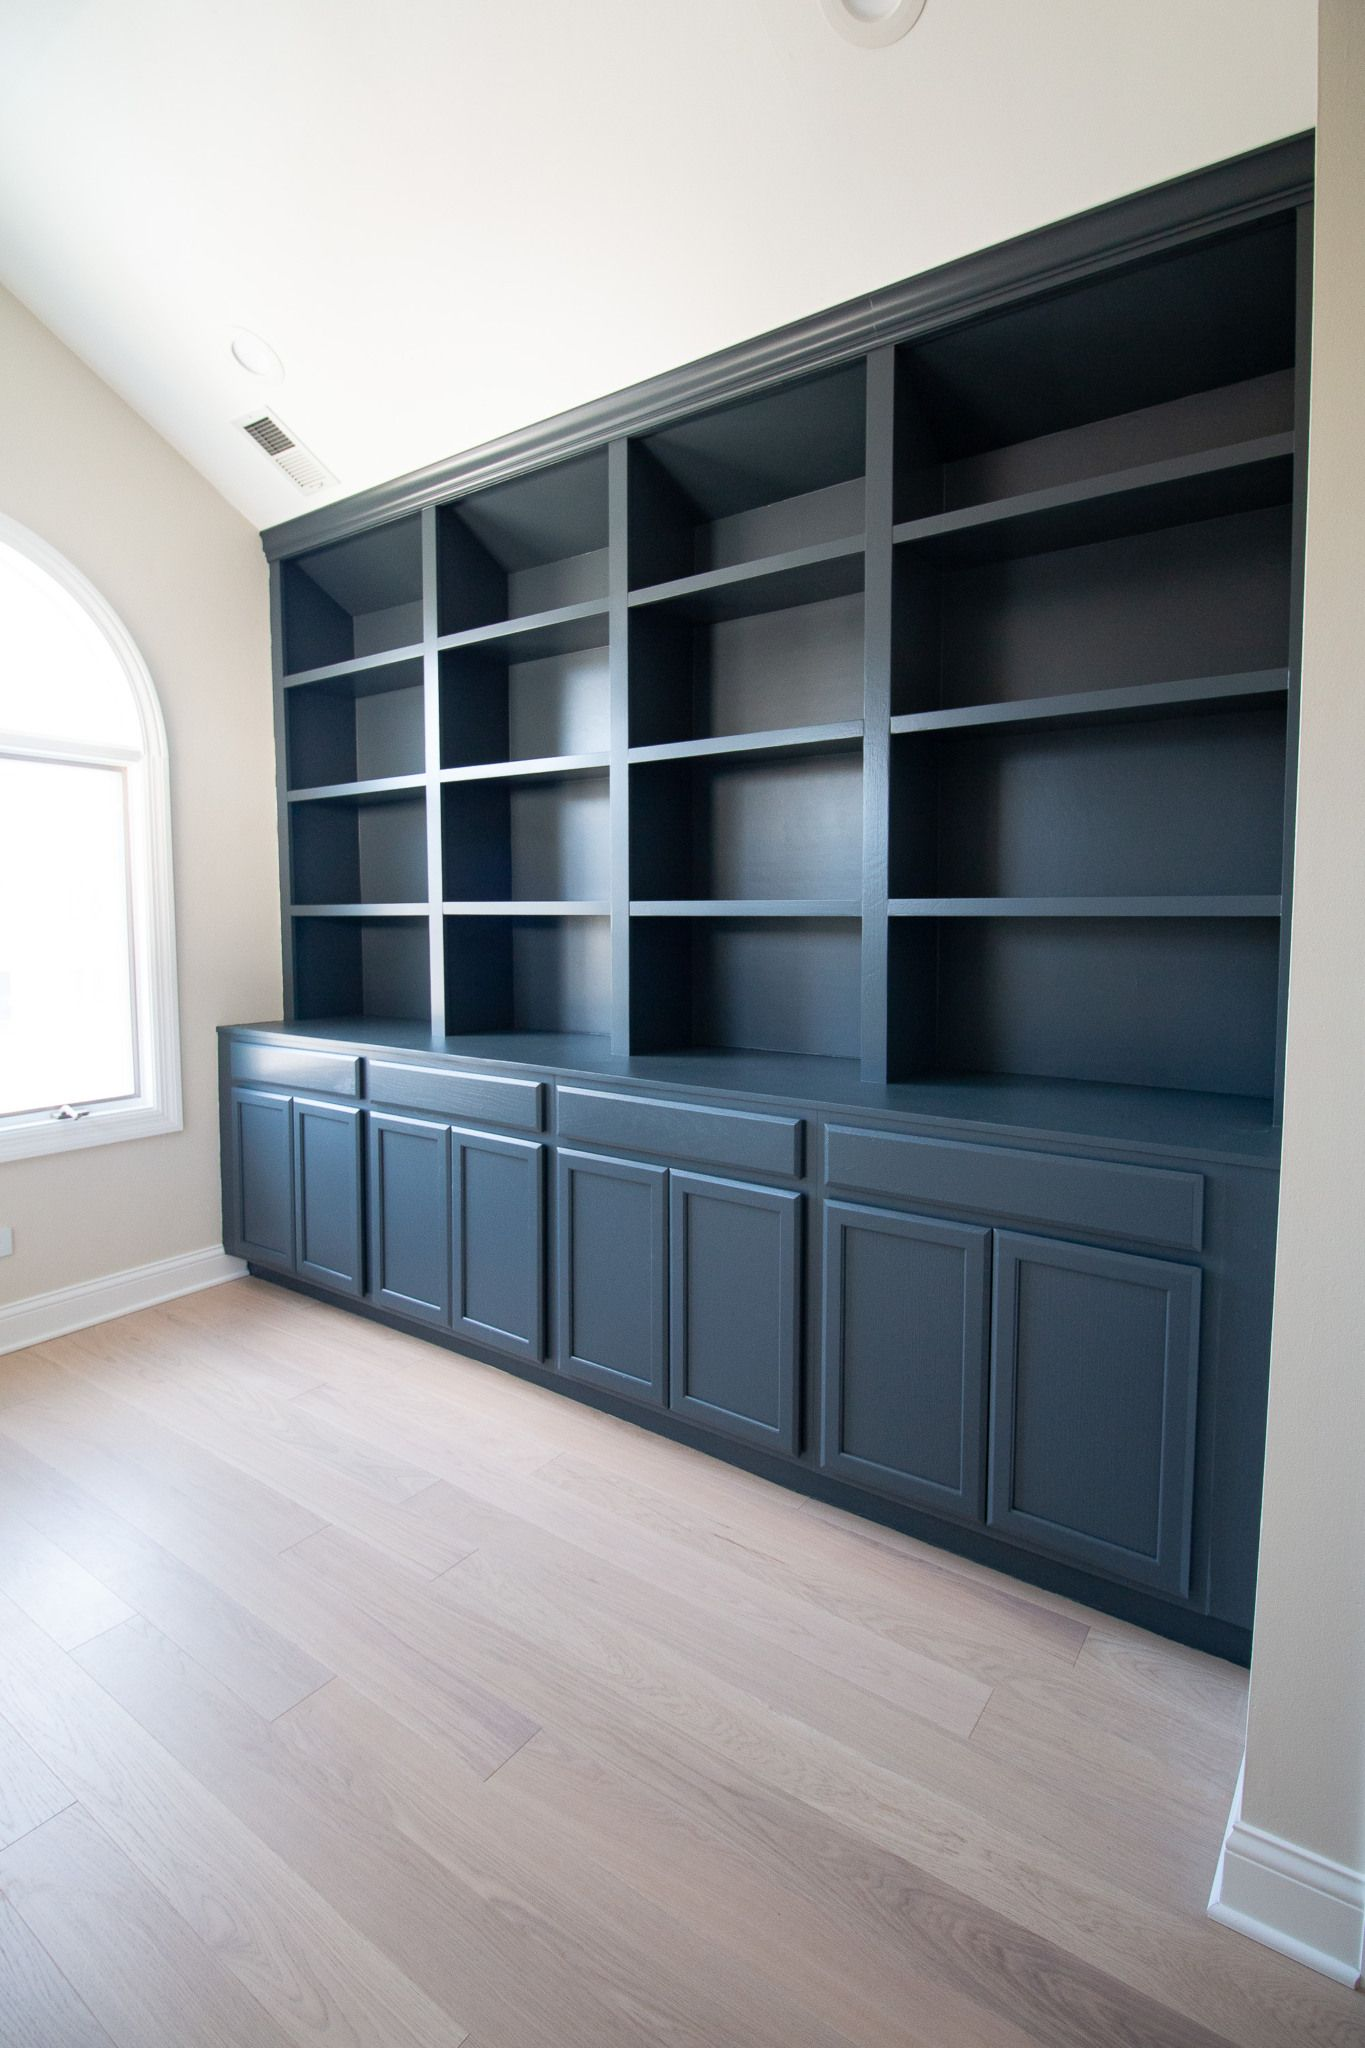 Diy Office Built Ins With Storage The Diy Playbook In 2020 Office Built Ins Built In Shelves Living Room Bookshelves Built In